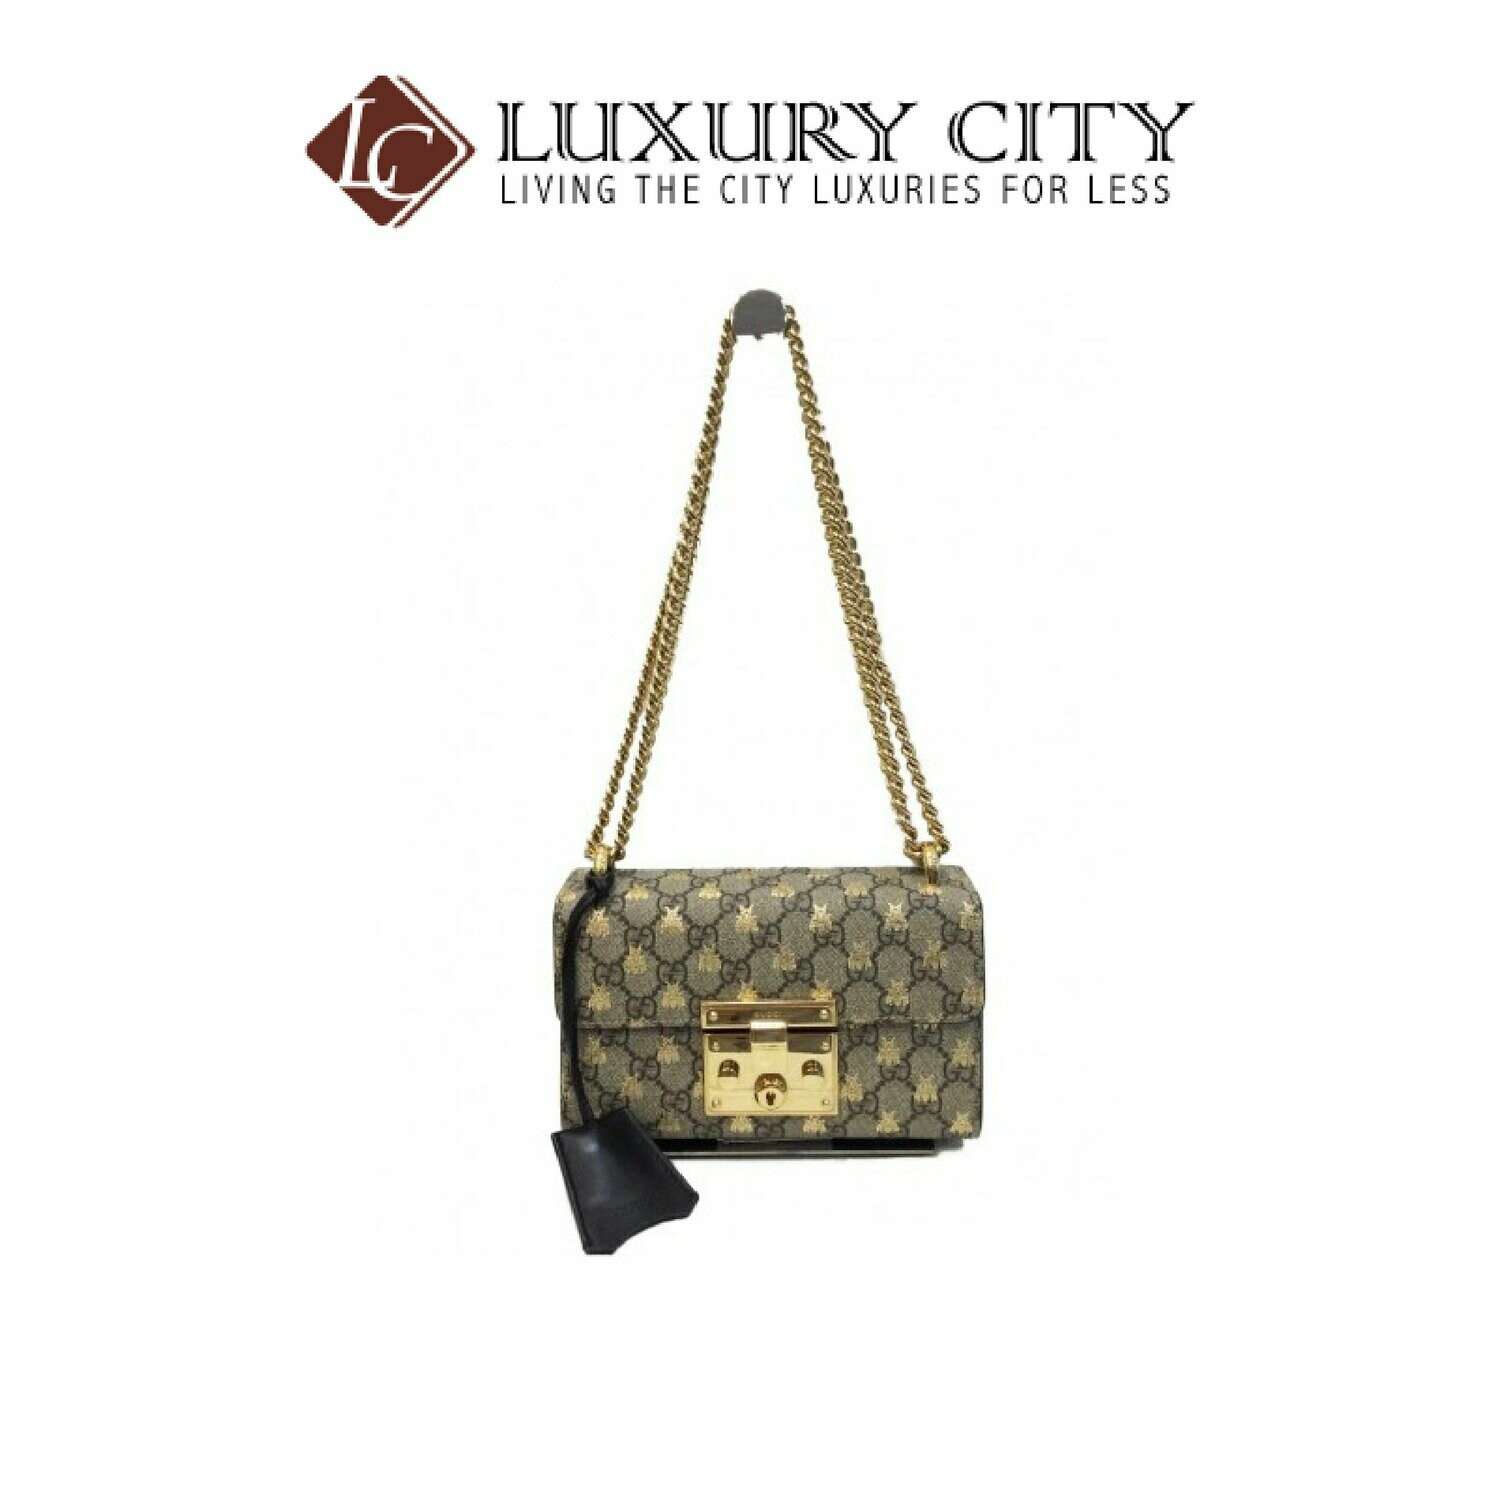 [Luxury City] Preloved Authentic Gucci Shoulder Bag